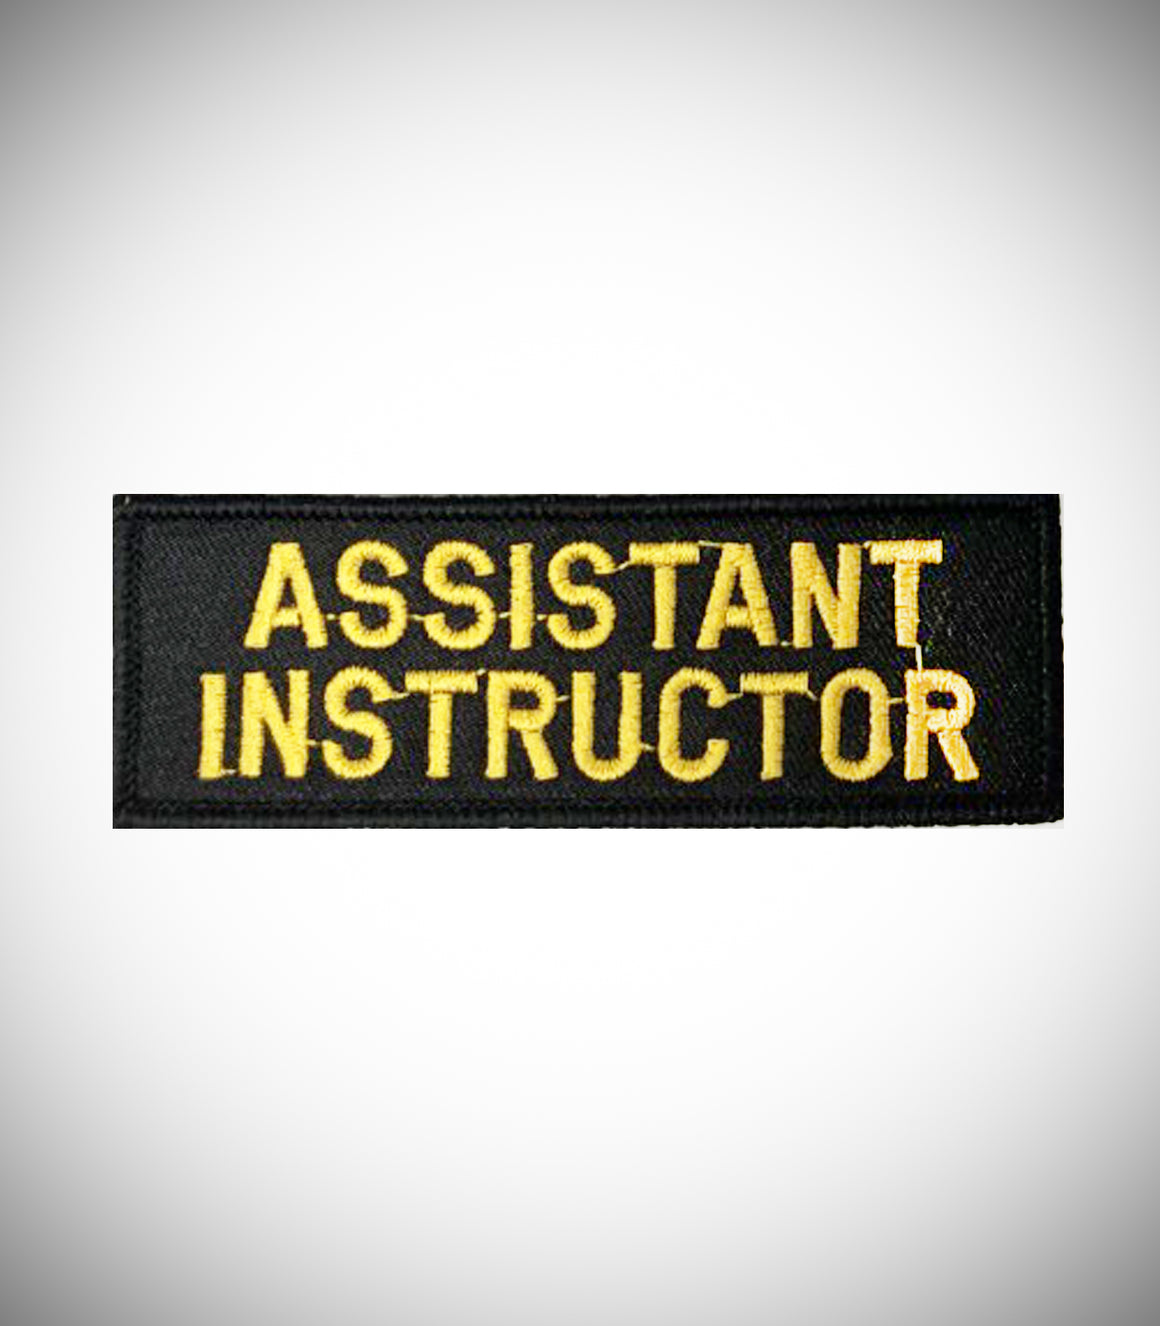 ASSISTANT INSTRUCTOR SEW ON PATCH